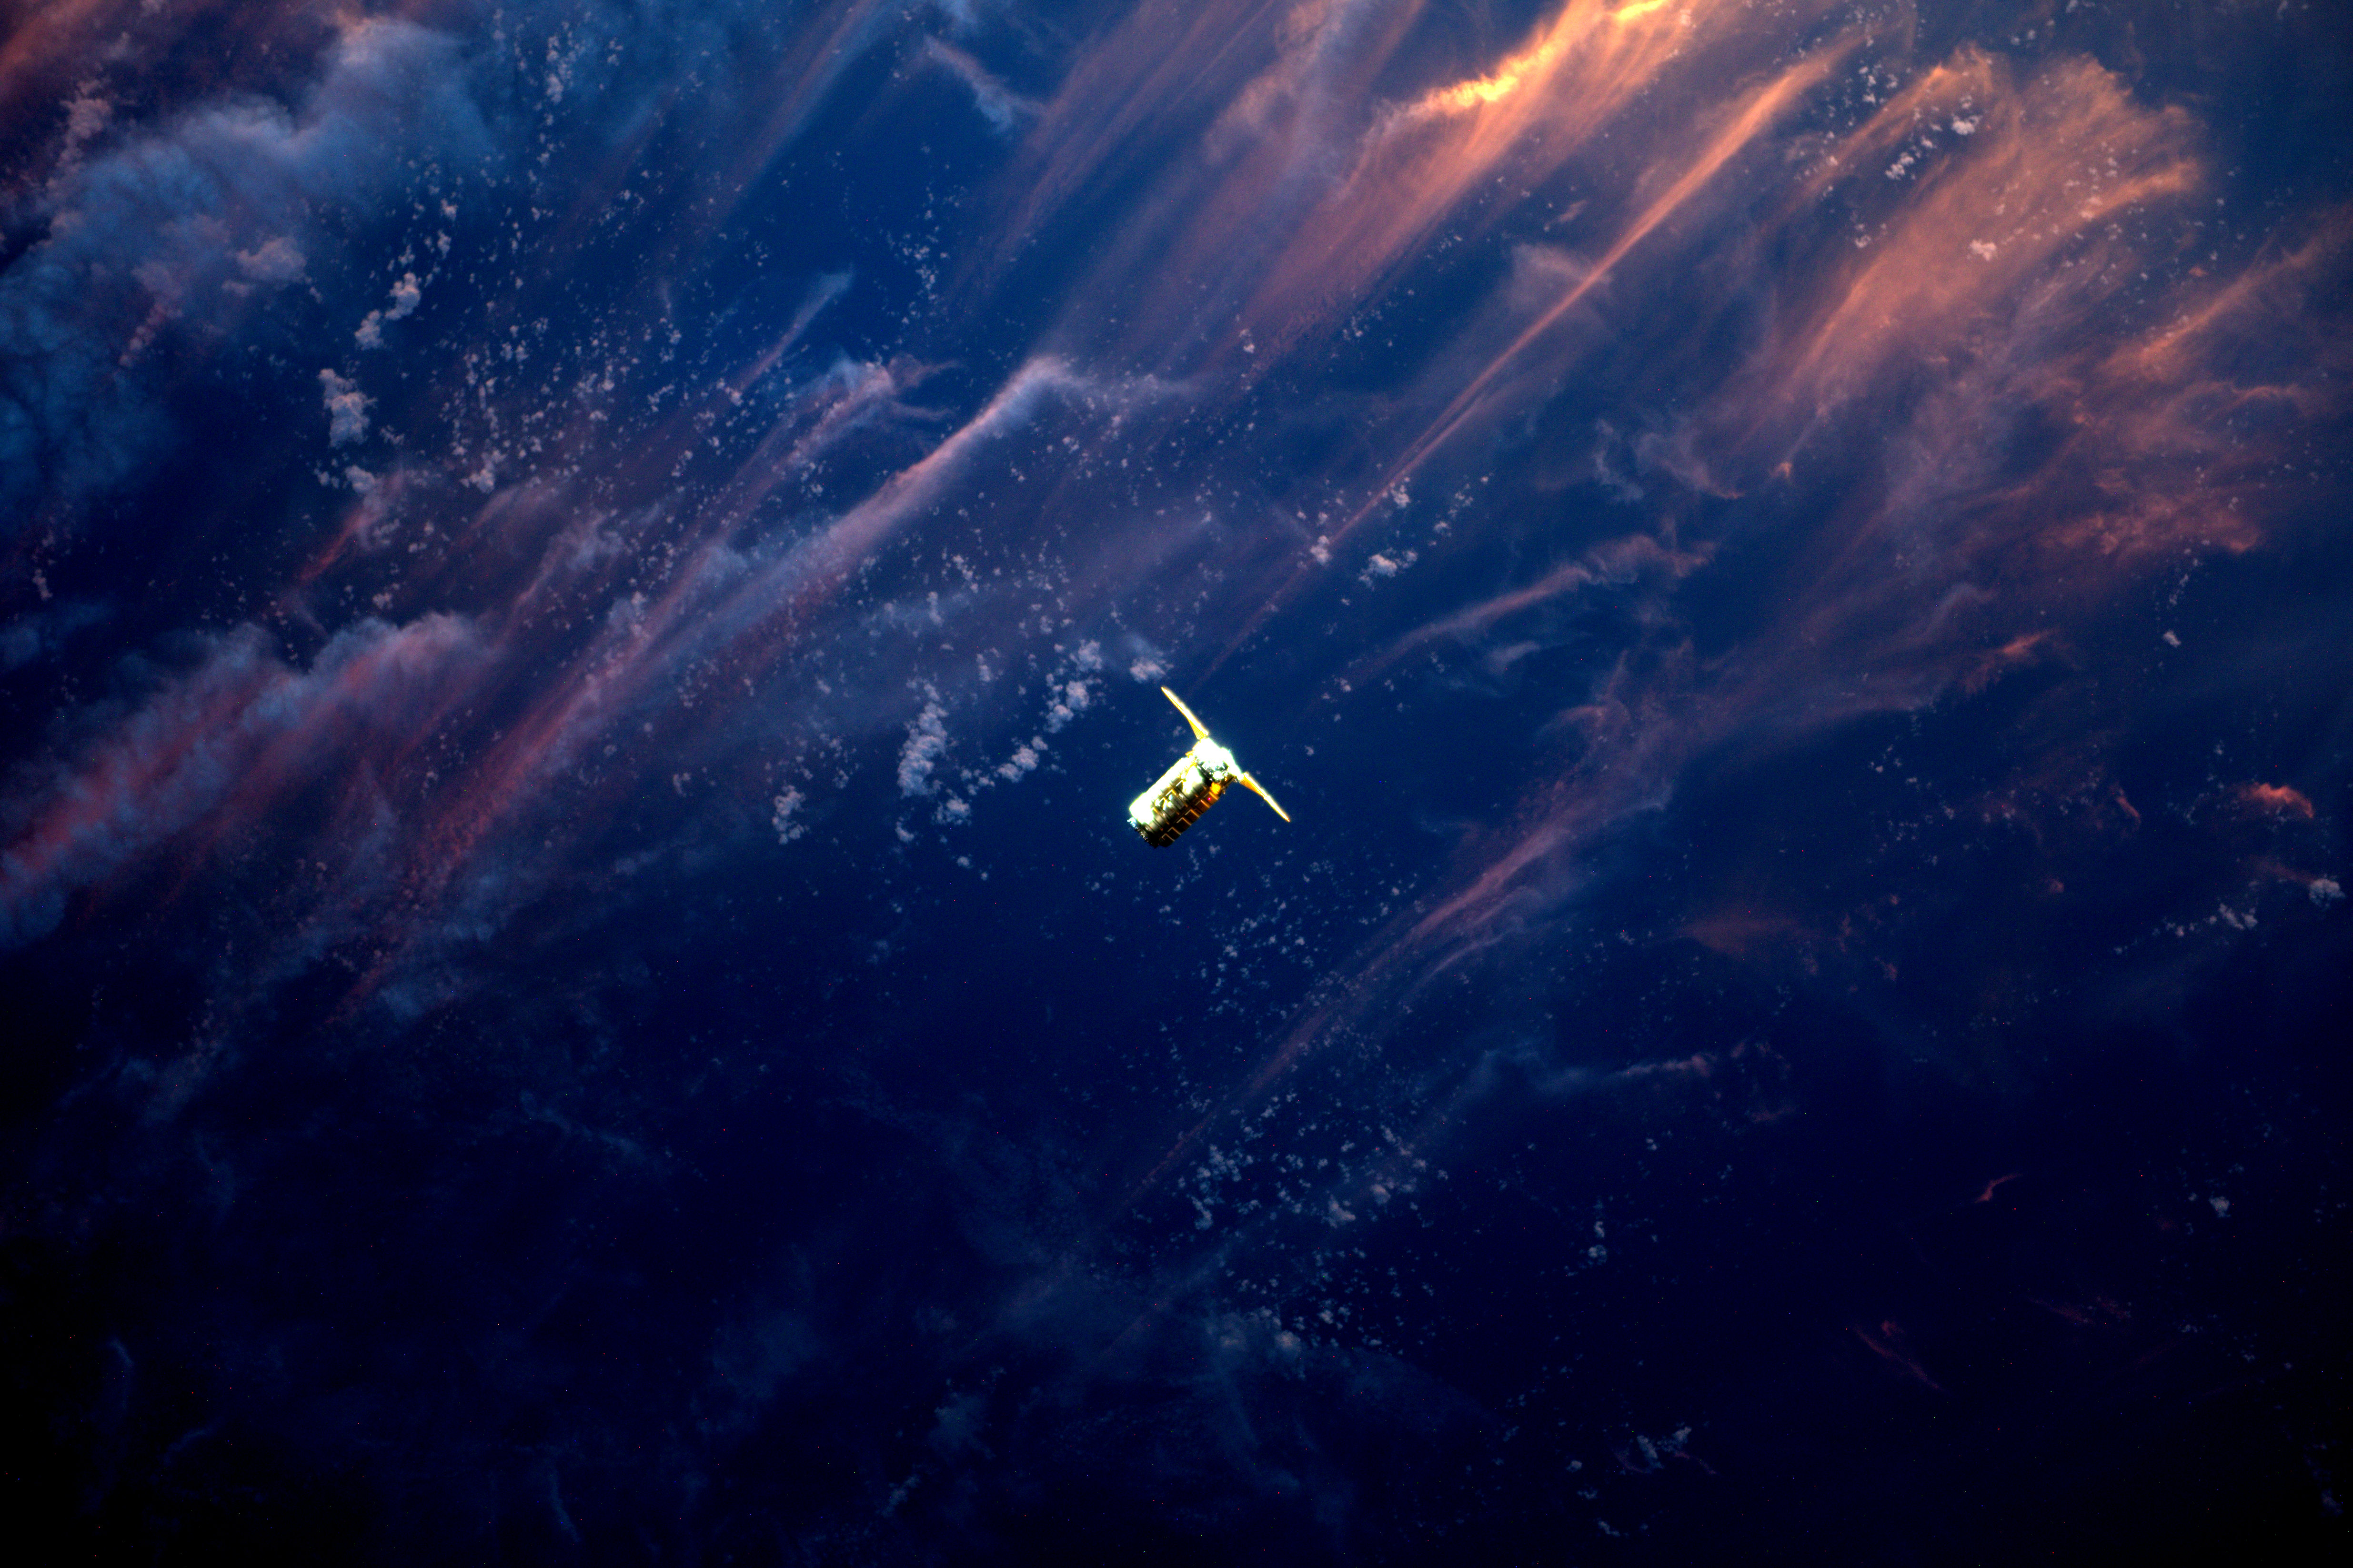 Cygnus Spacecraft Approaches Space Station in the Sunset